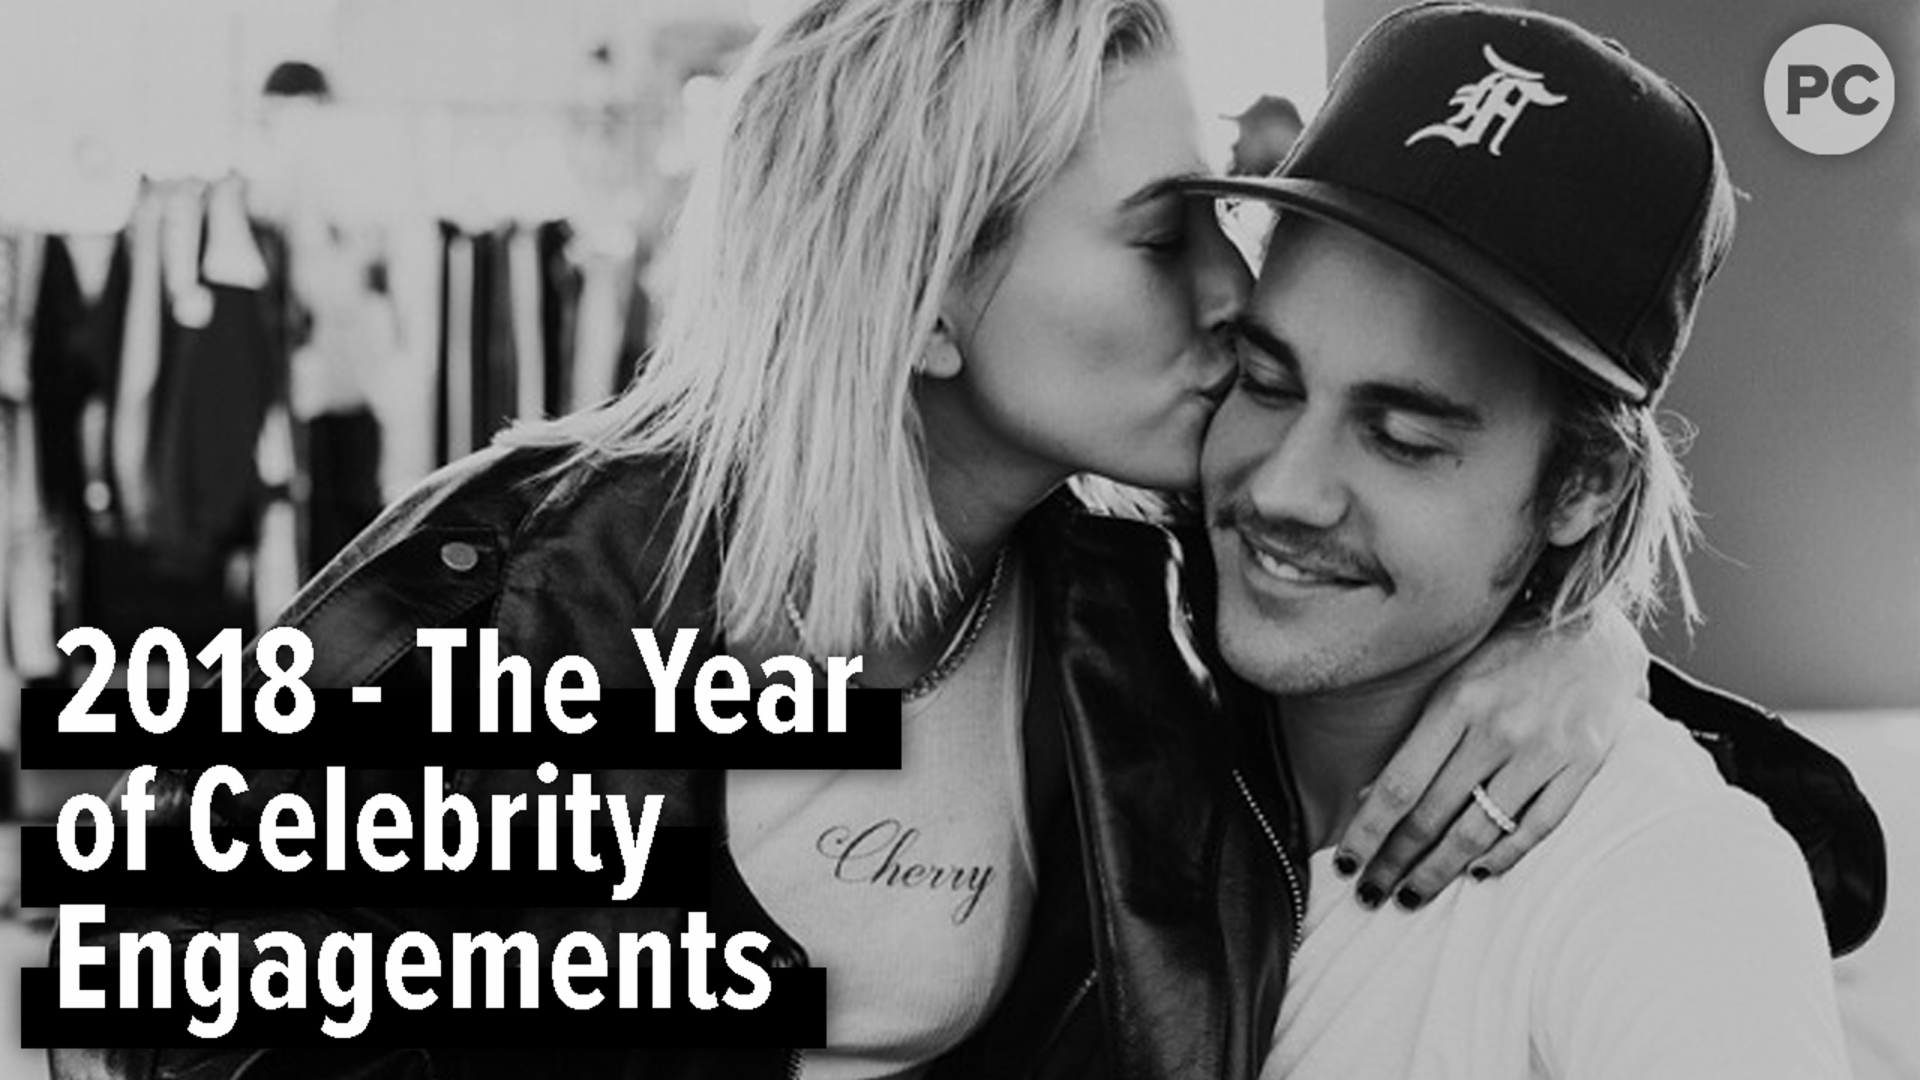 2018 - The Year of Celebrity Engagements screen capture